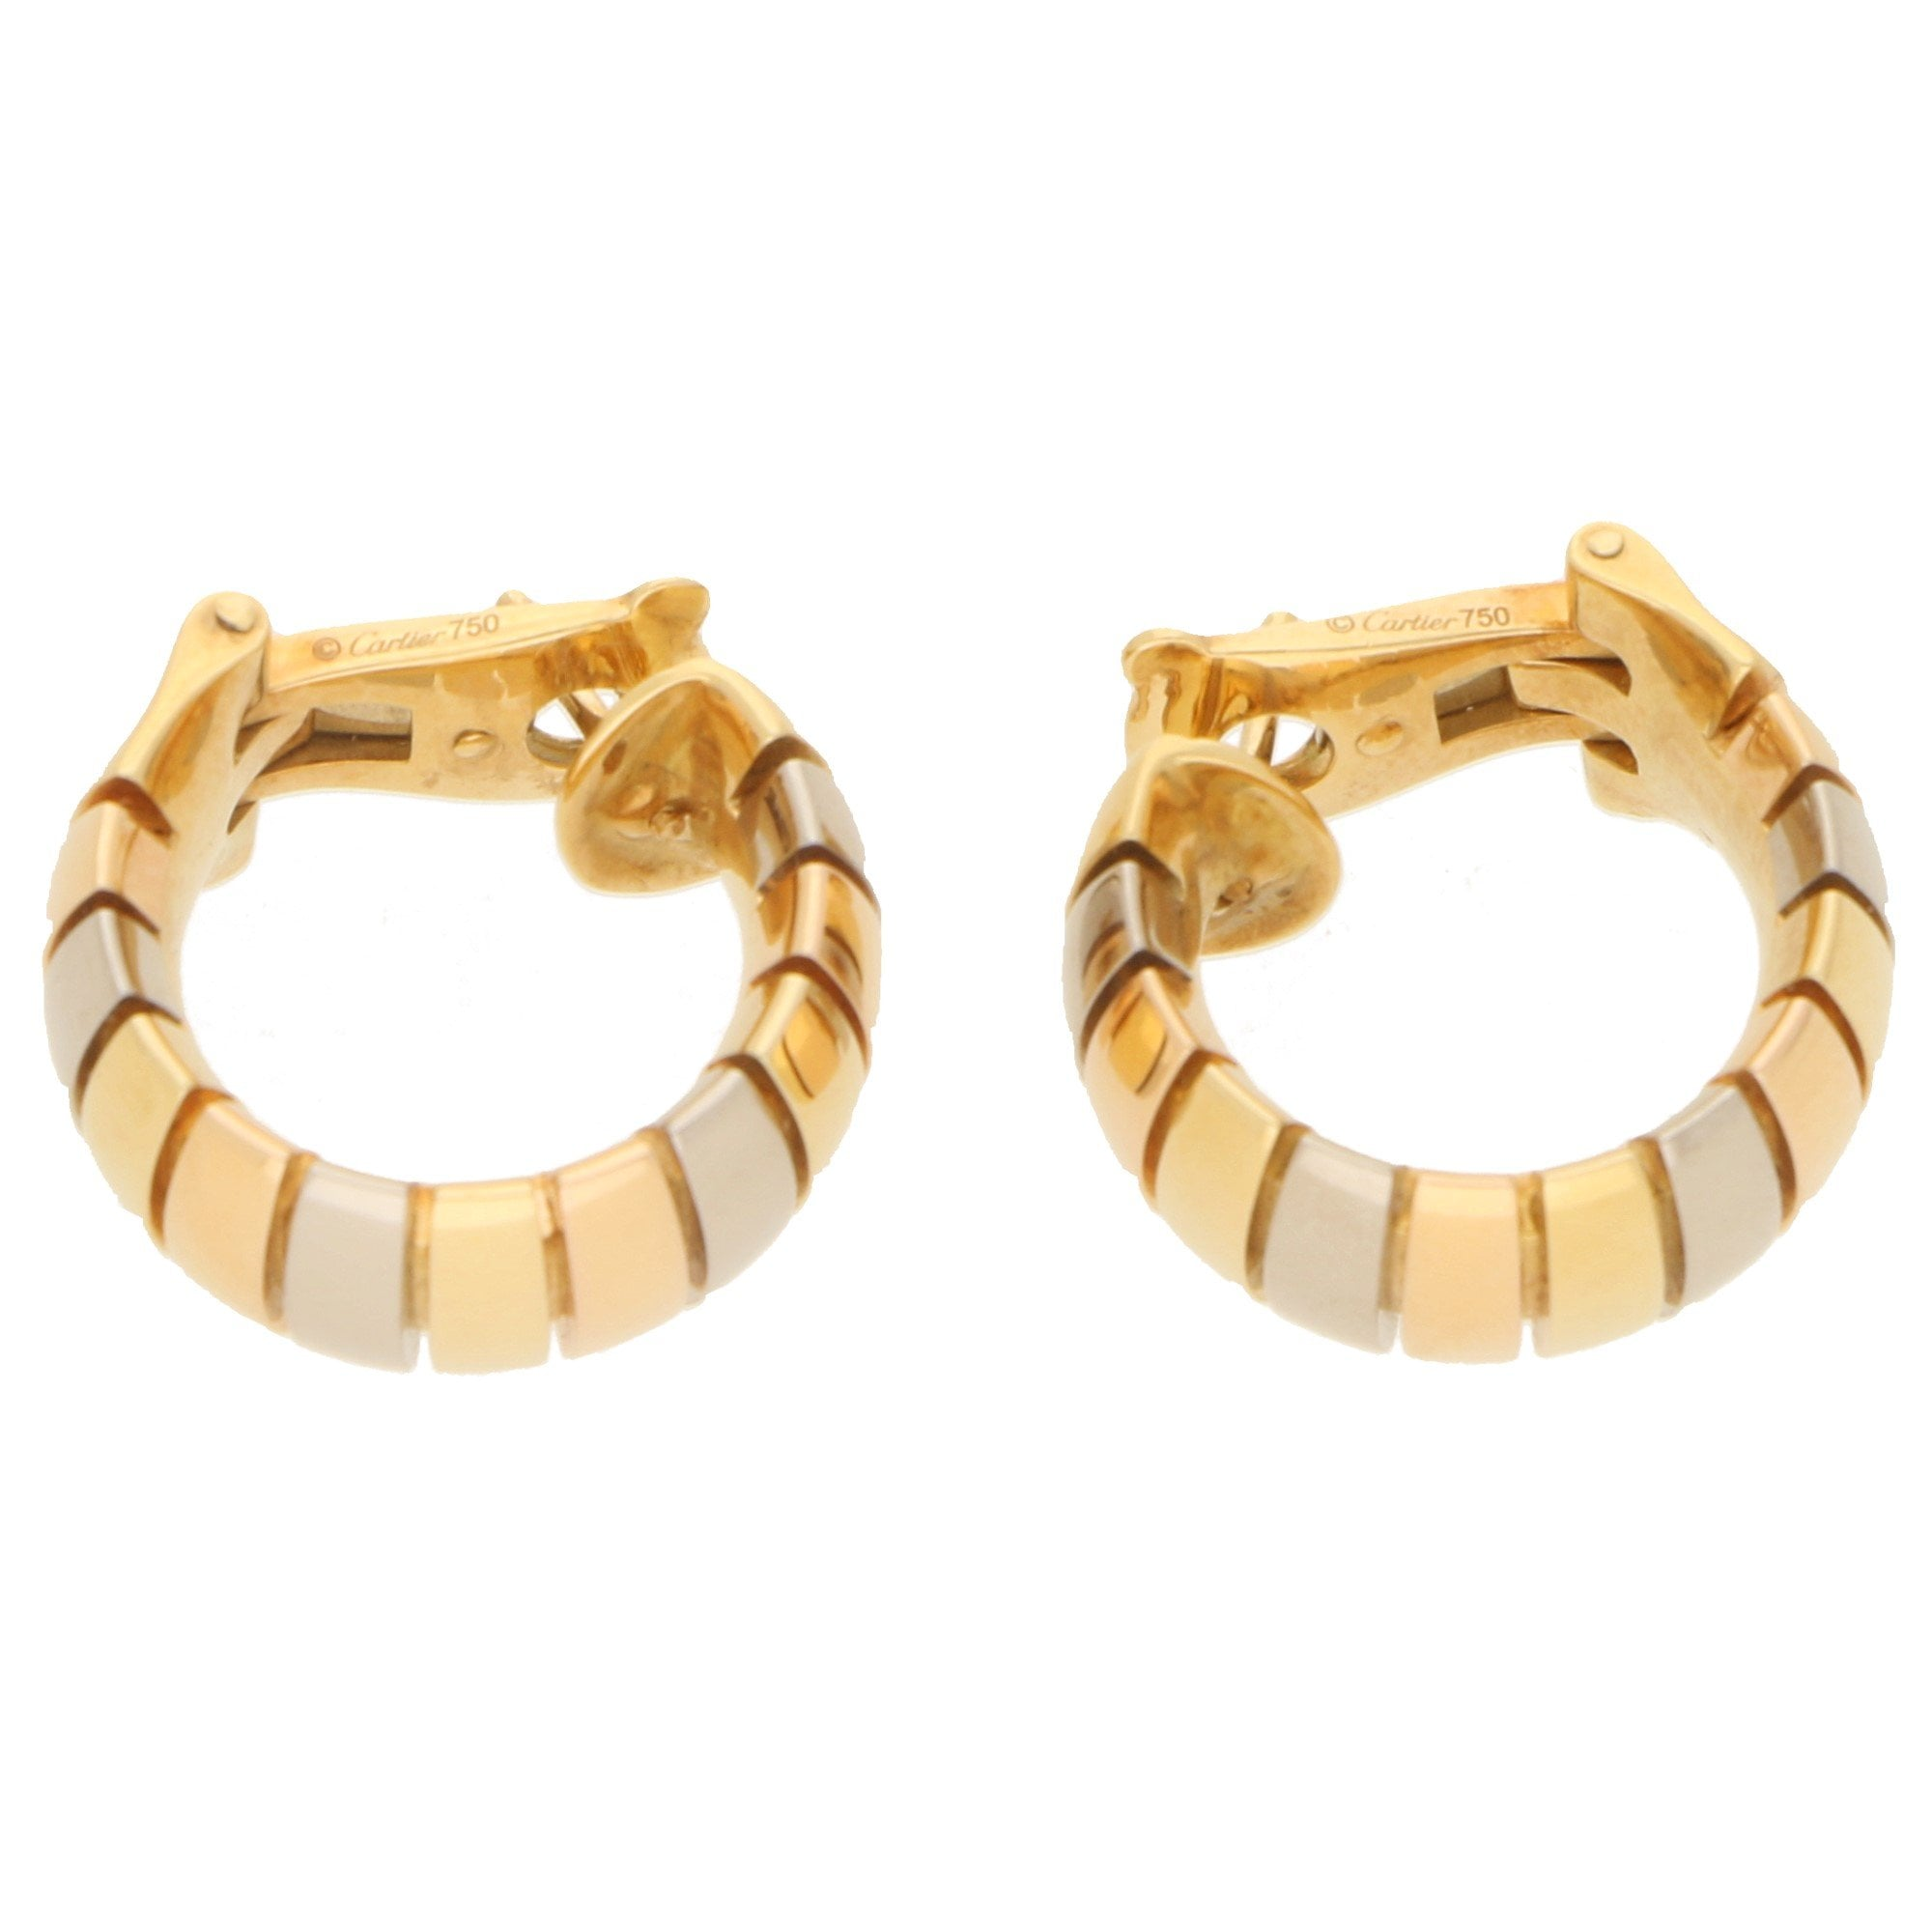 Gas Pipe Style Tricolour Gold Hoop Earrings At Susannah Lovis Antique Jewellery